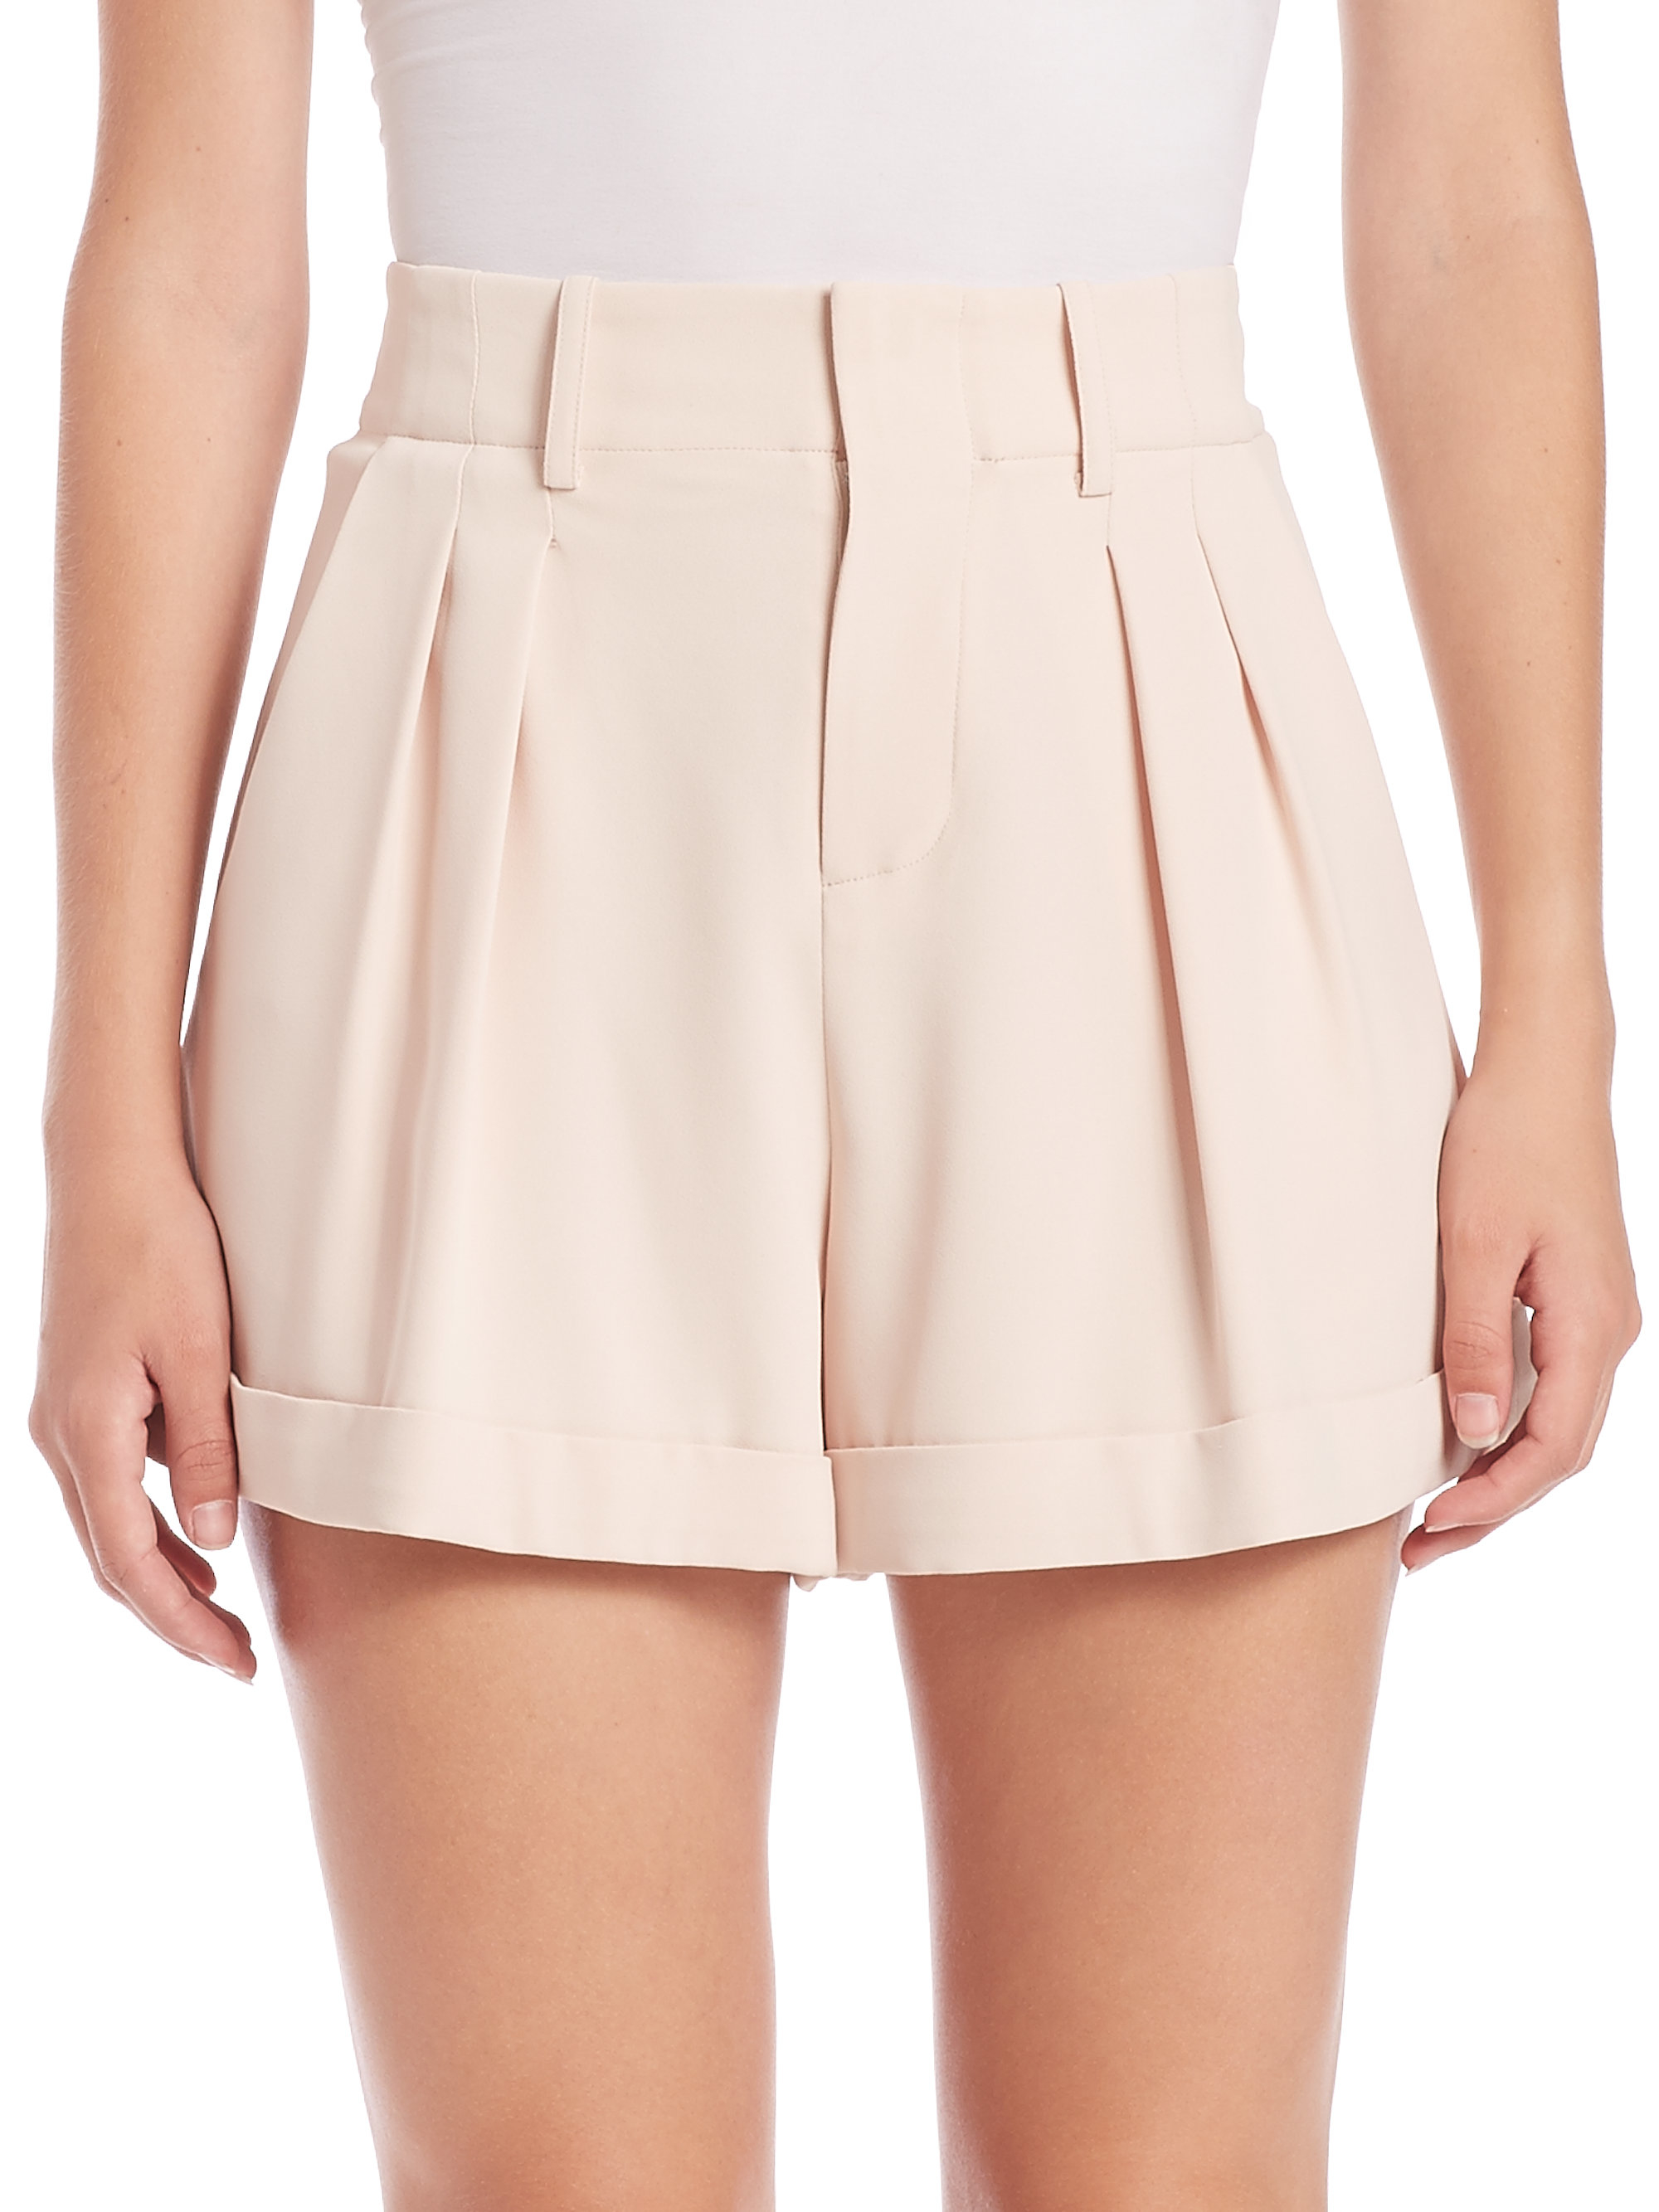 Alice + olivia Amani High-waist Pleated Shorts in Pink